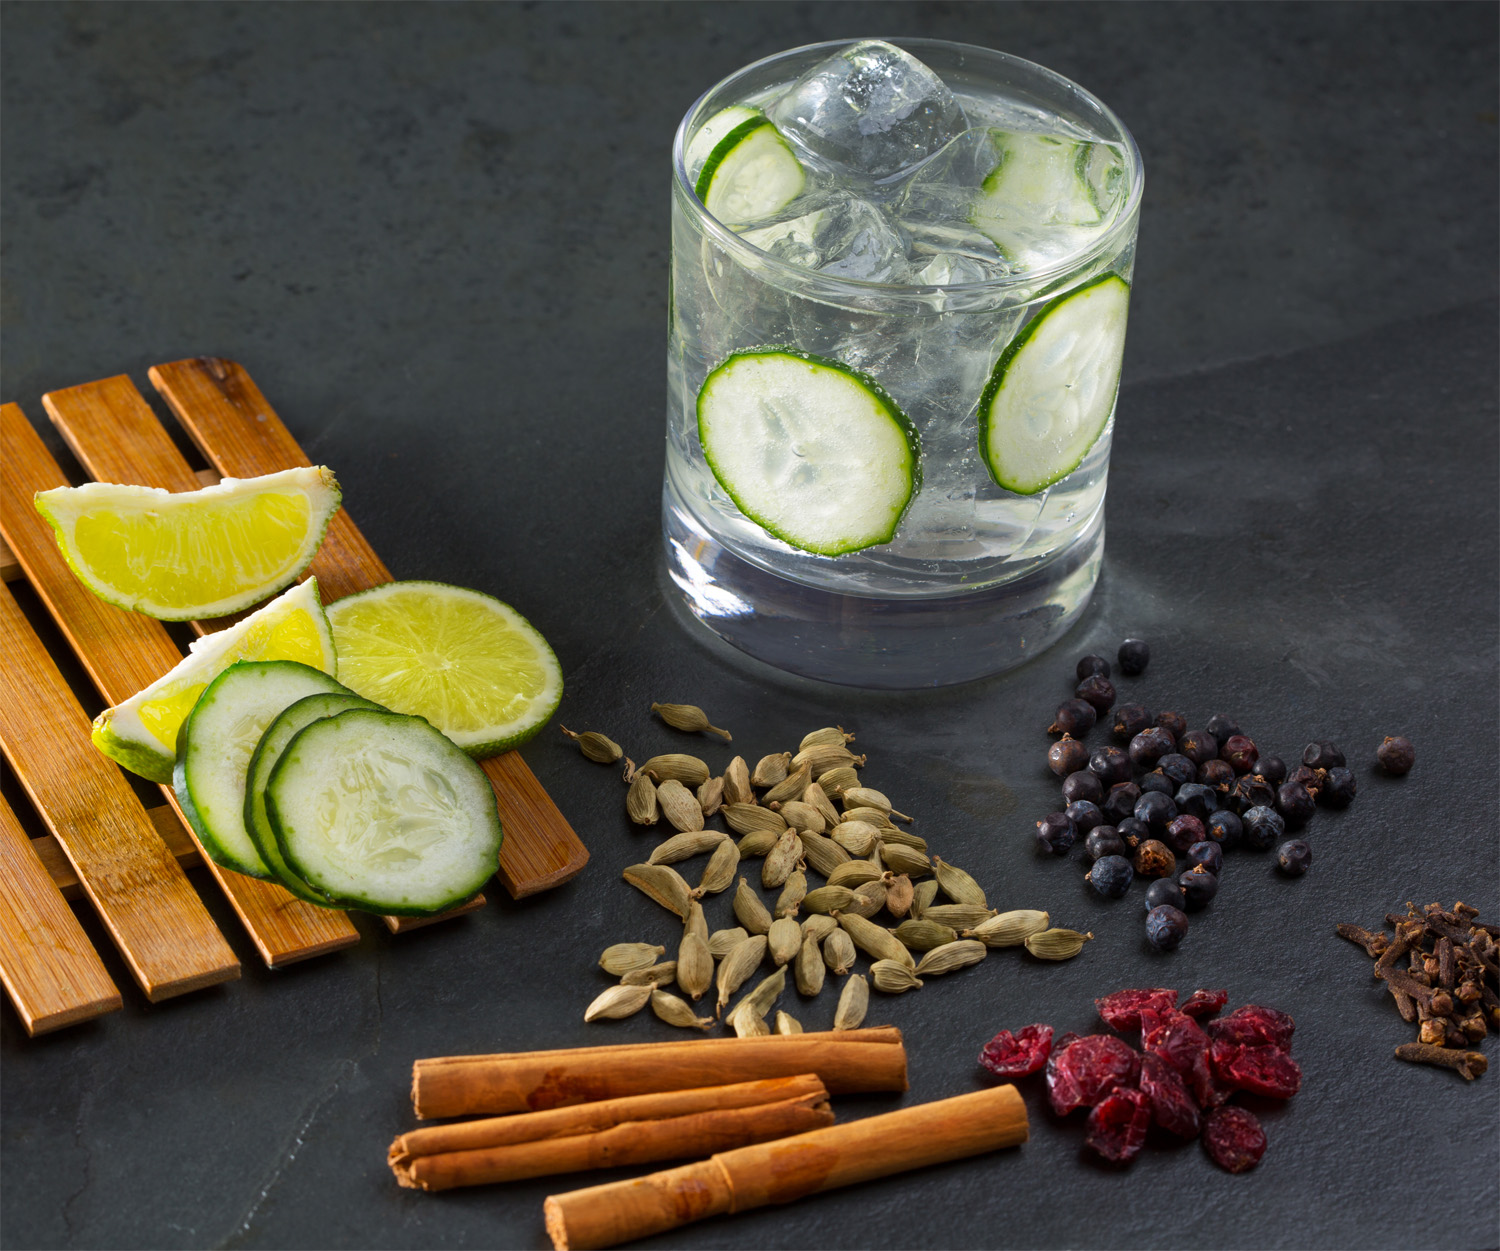 Cucumber Cocktail with Botanicals